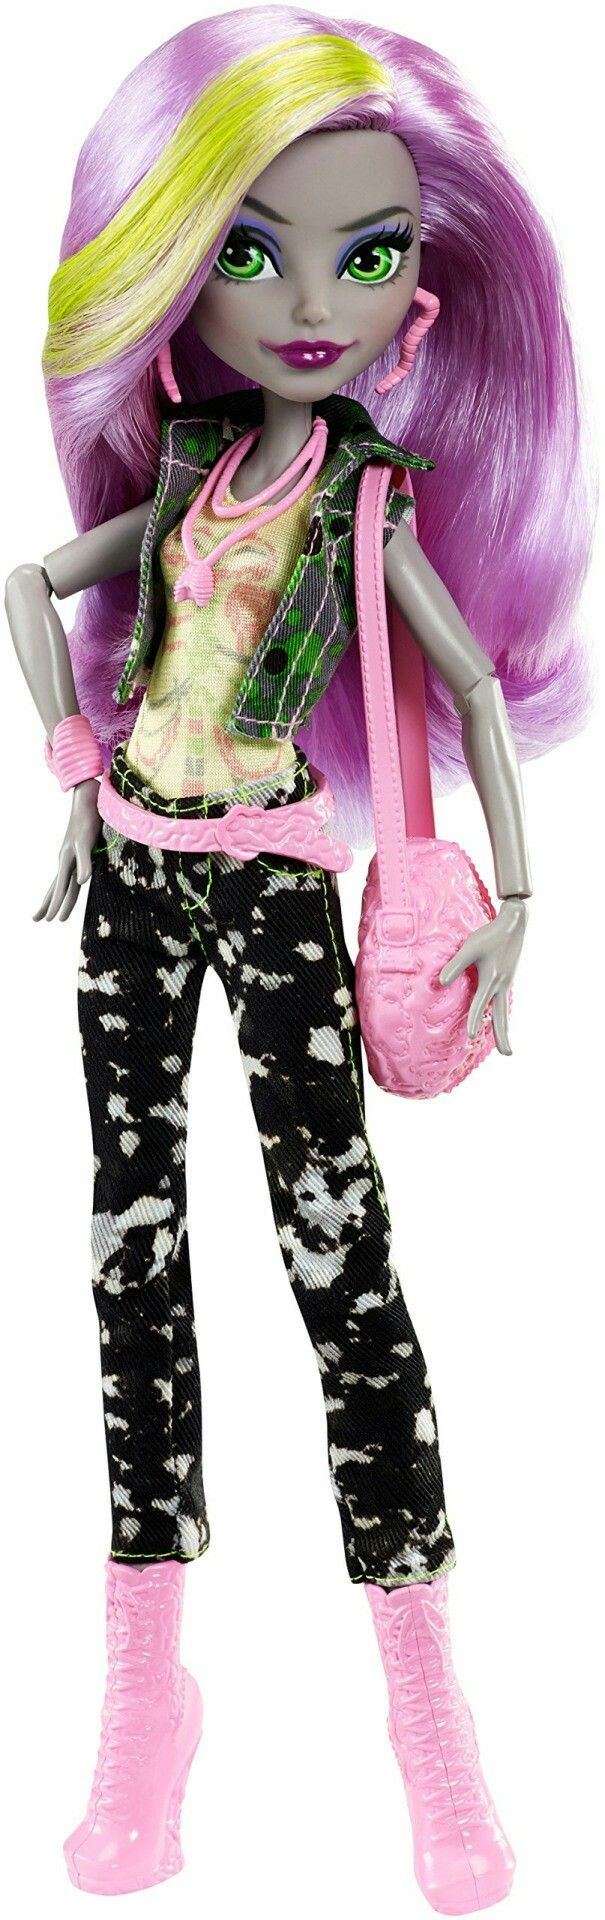 Moanica D'Kay -- Monster High doll.                                                                                                                                                     More